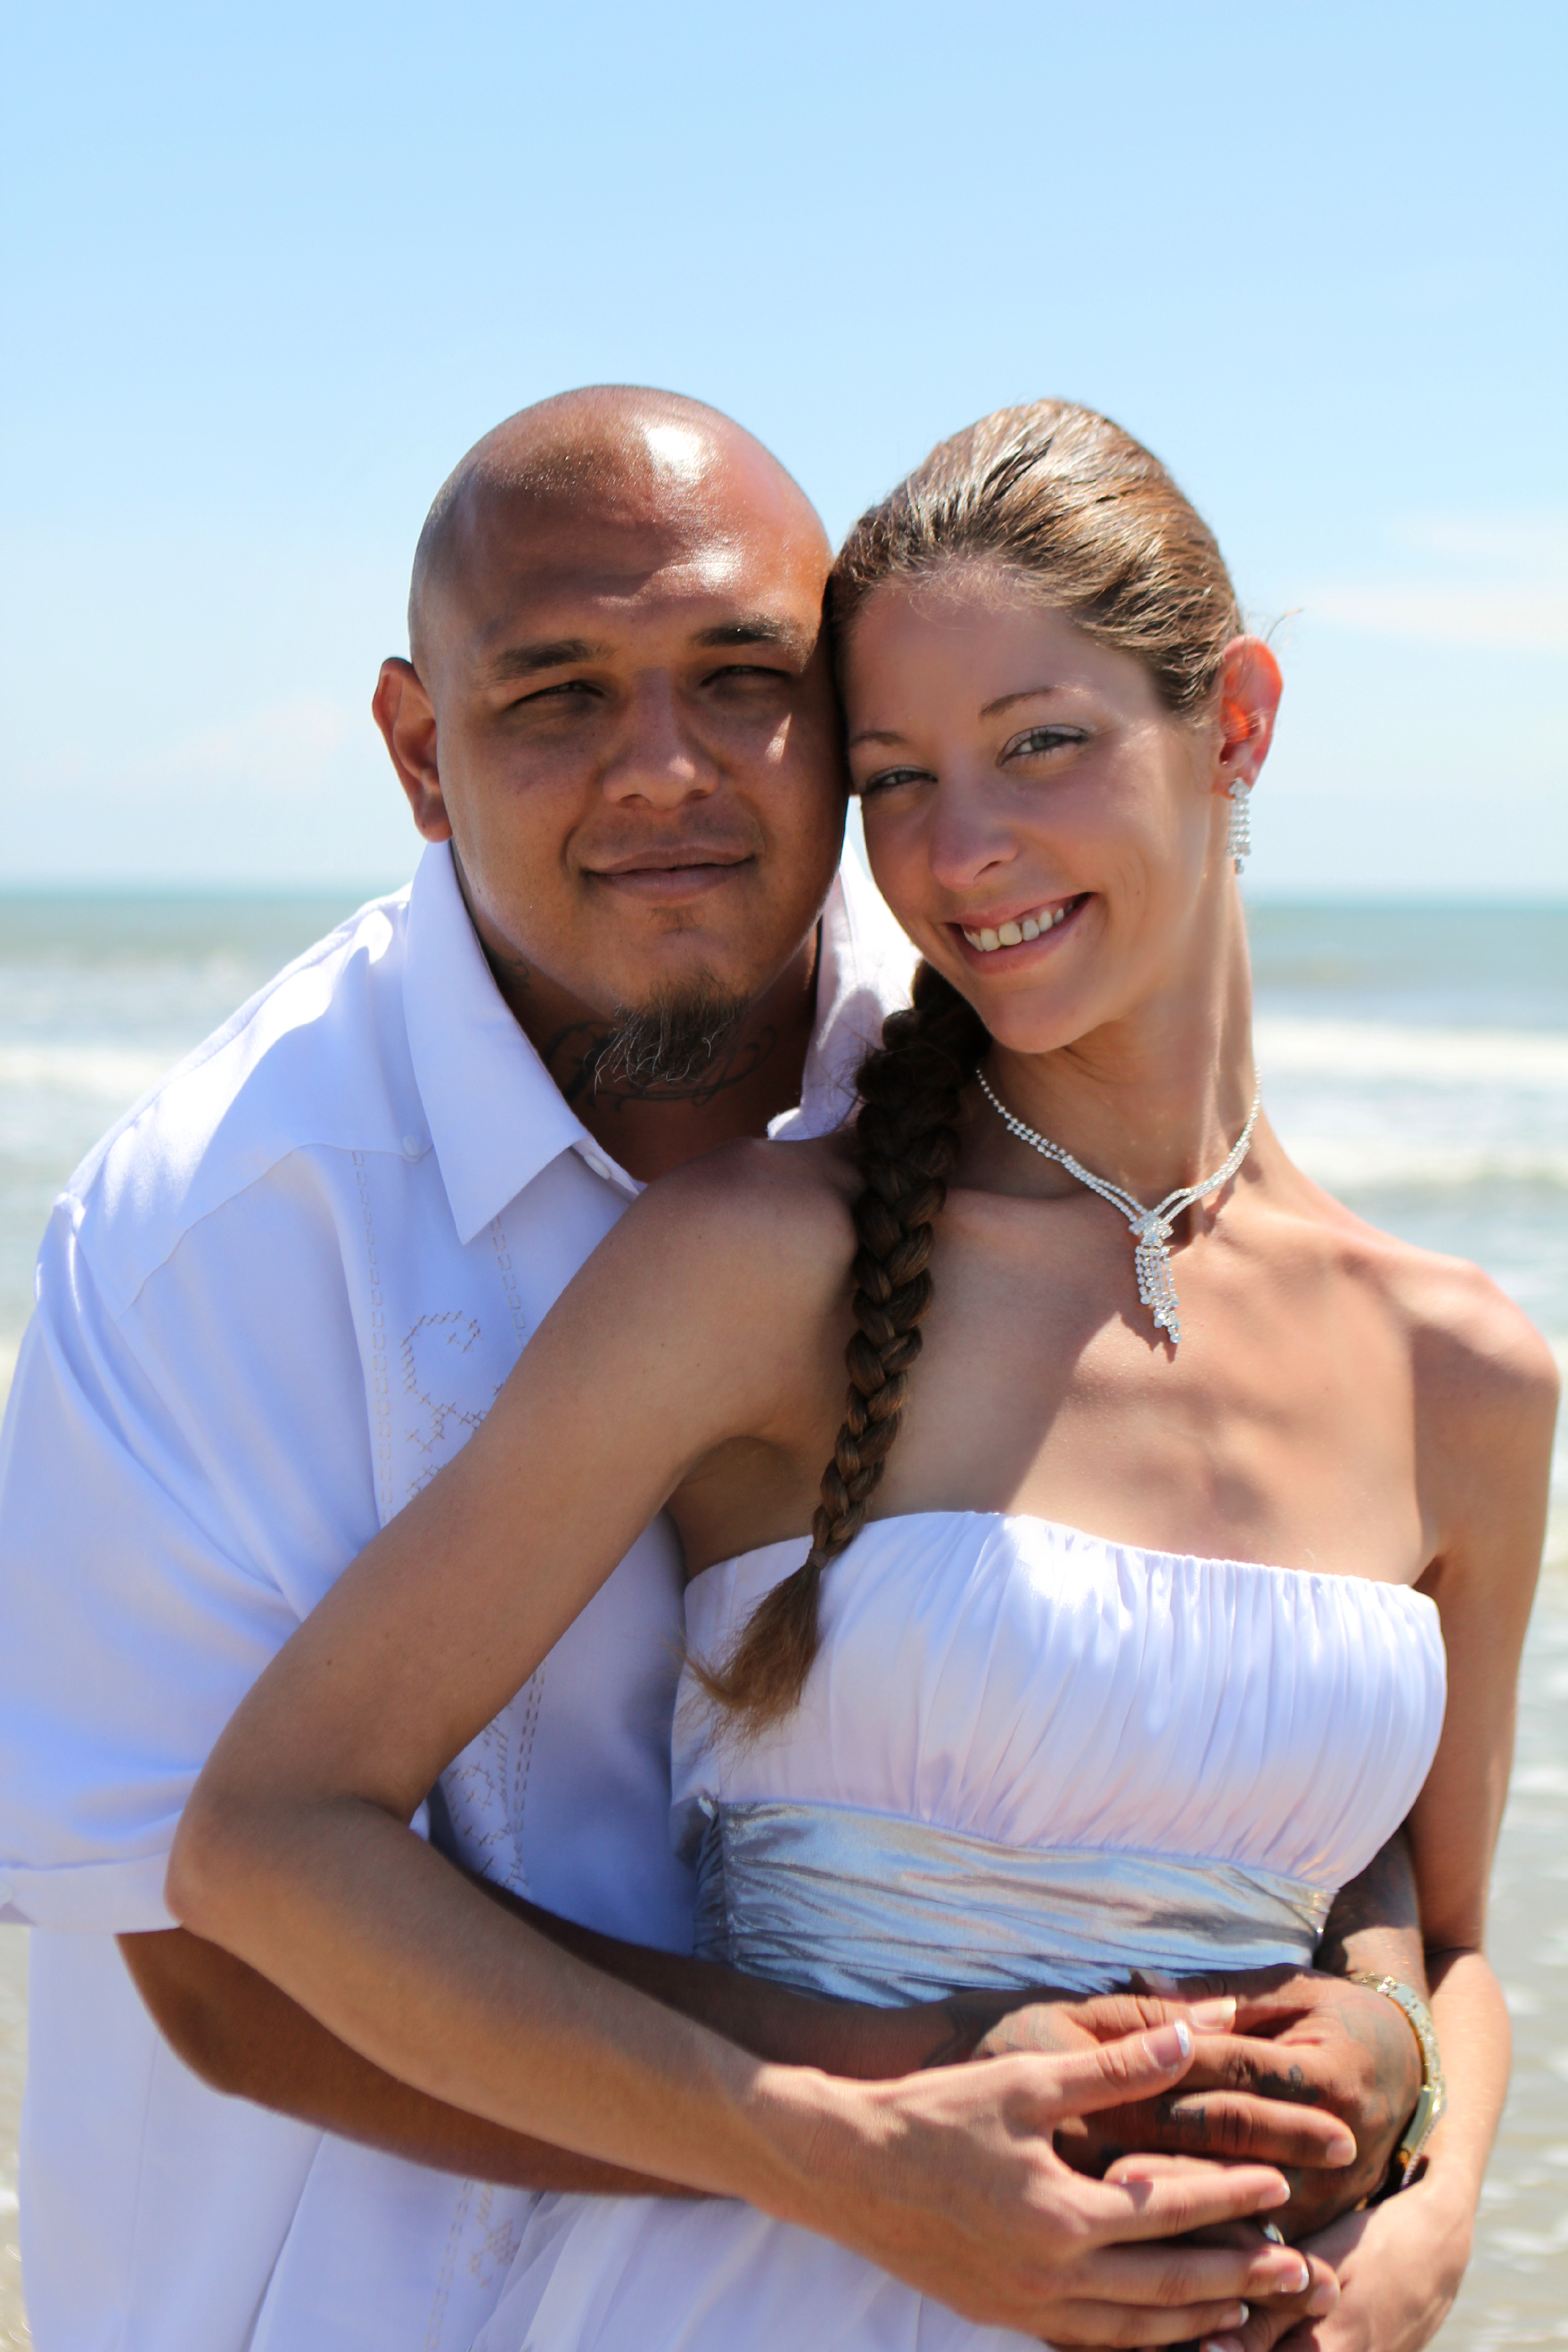 cocoa beach personals Cocoa beach's best free dating site 100% free online dating for cocoa beach singles at mingle2com our free personal ads are full of single women and men in cocoa beach looking for serious.